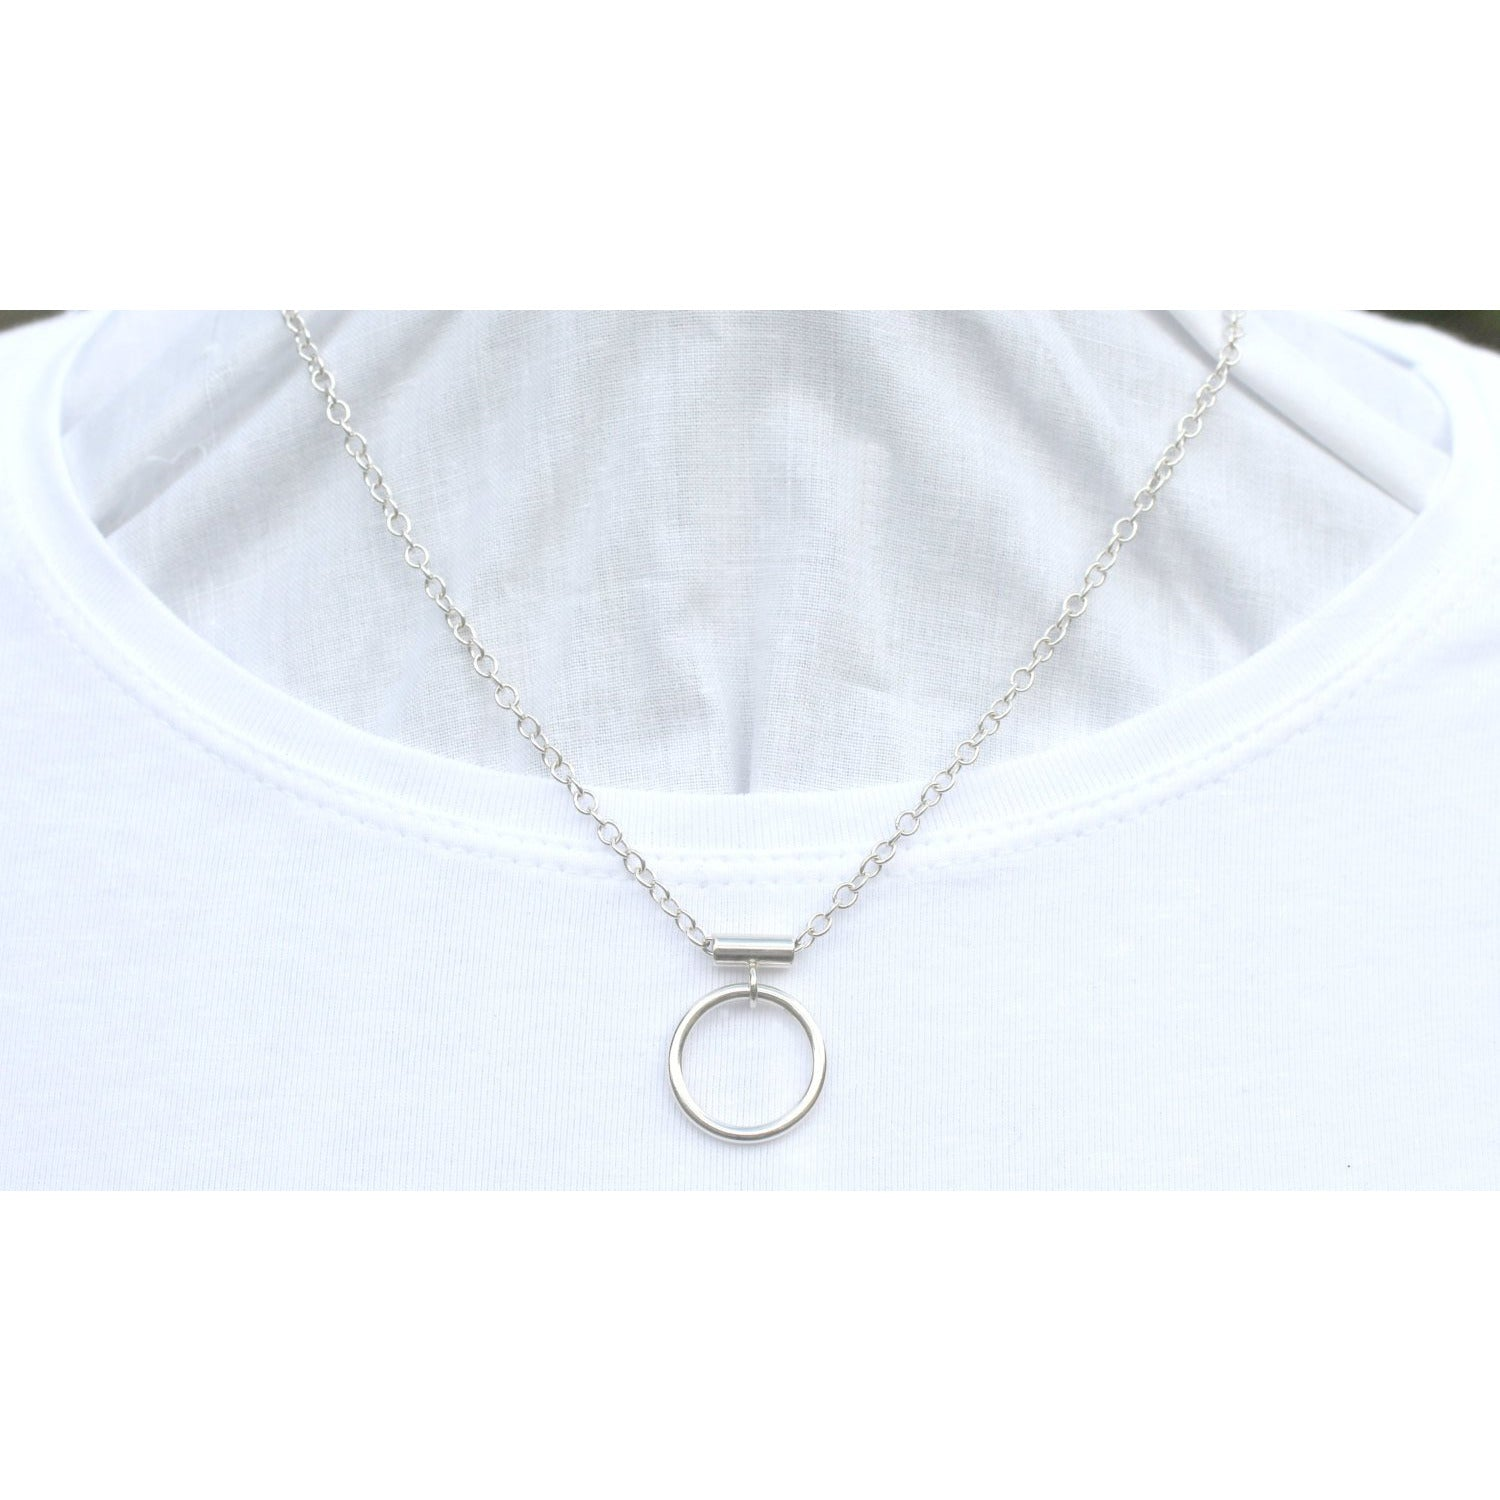 Discreet Day Collar, O Ring, Sterling Silver (925), Choker, Necklace, Silver O Ring, Handmade, Unisex.